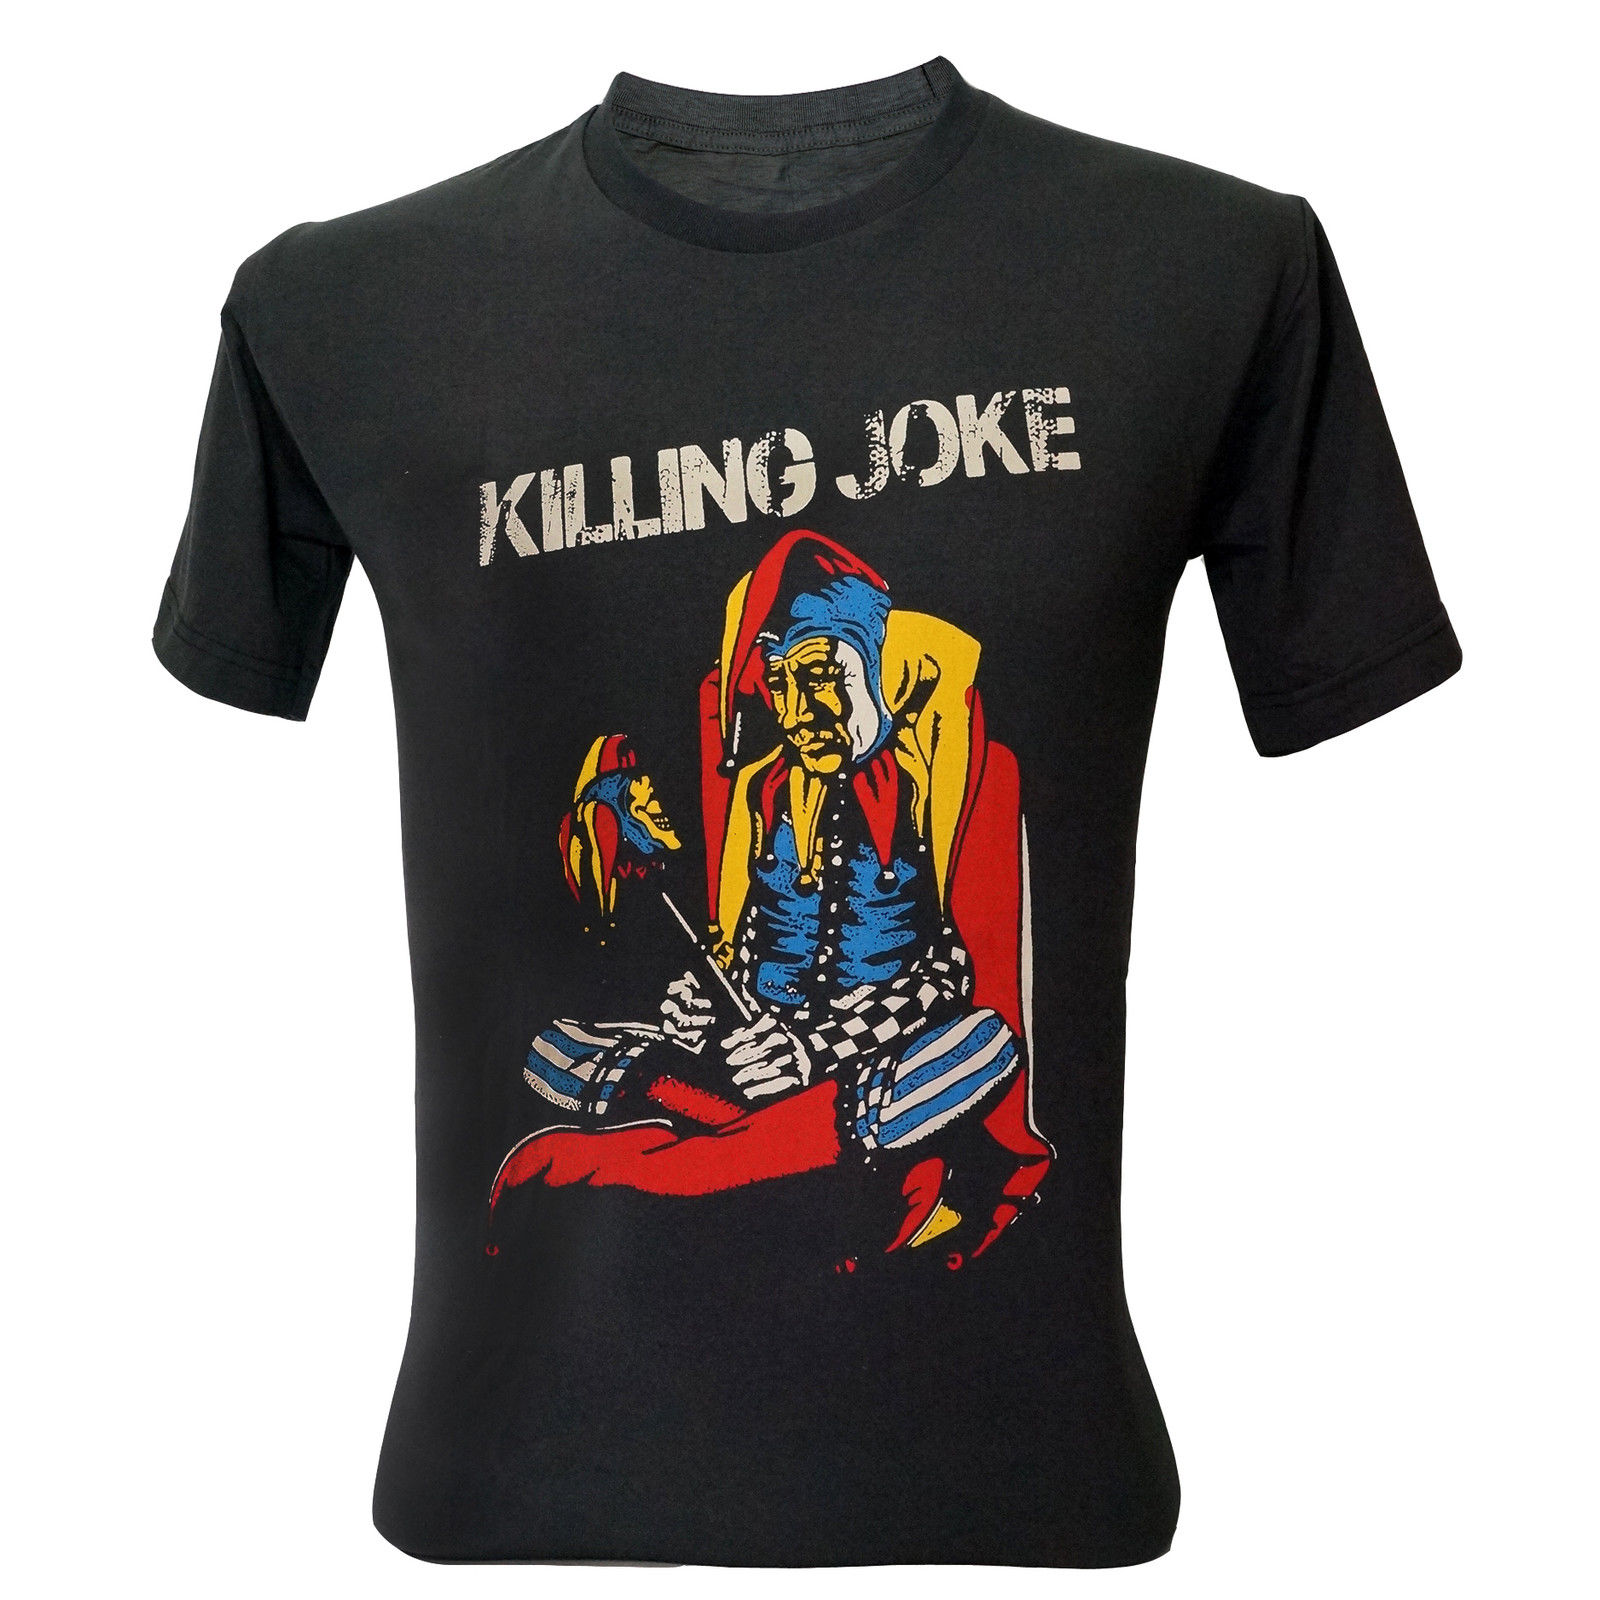 New KILLING JOKE Punk Rock Band Logo Mens White Black T-Shirt Size S To 3XL Men Adult T Shirt Short Sleeve Cotton Top Tee